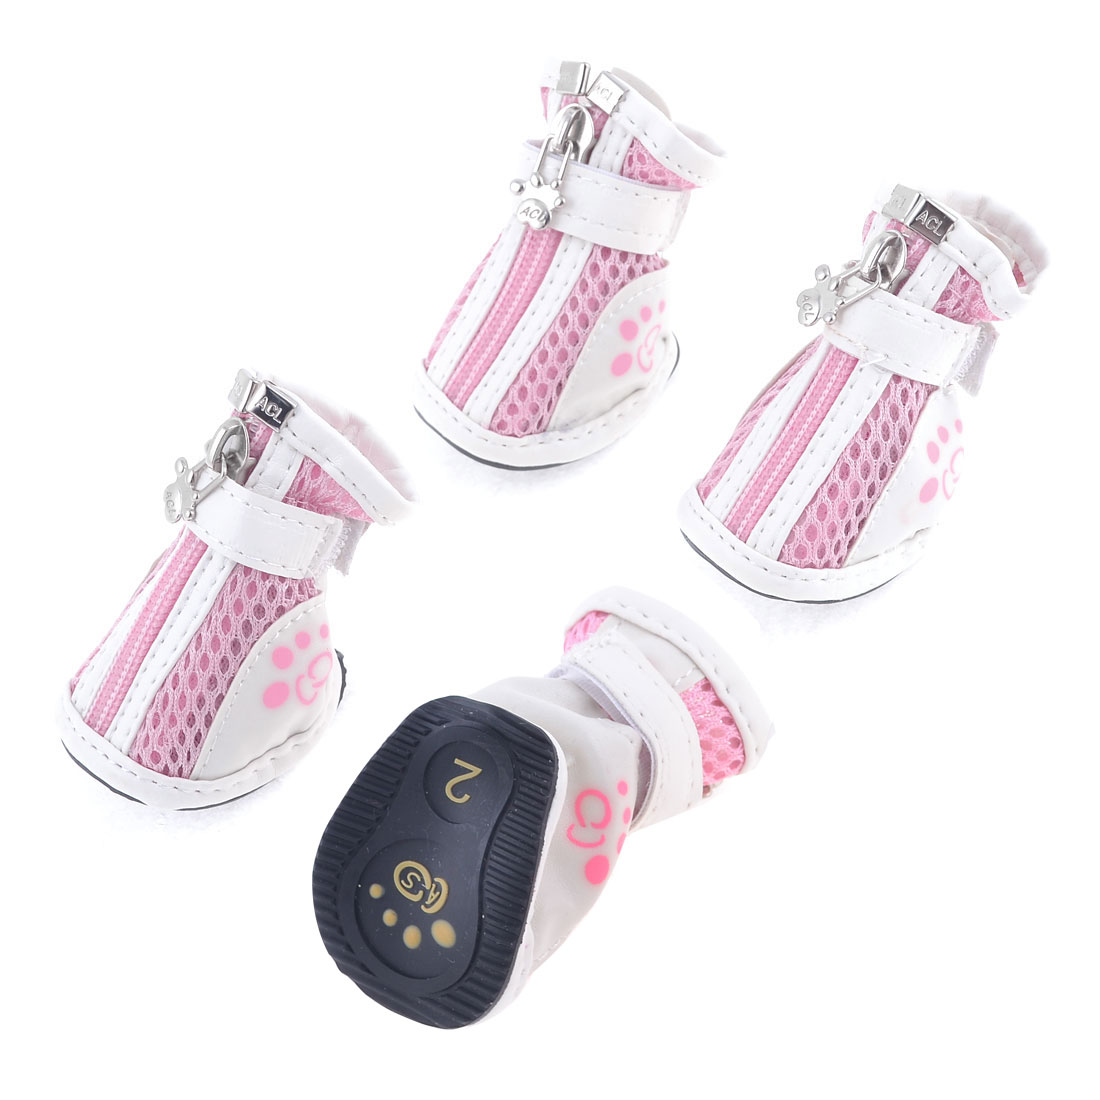 Dog Chihuaha Nonslip Rubber Sole Hook Loop Fastener Shoes White Pink 2 Pair XS